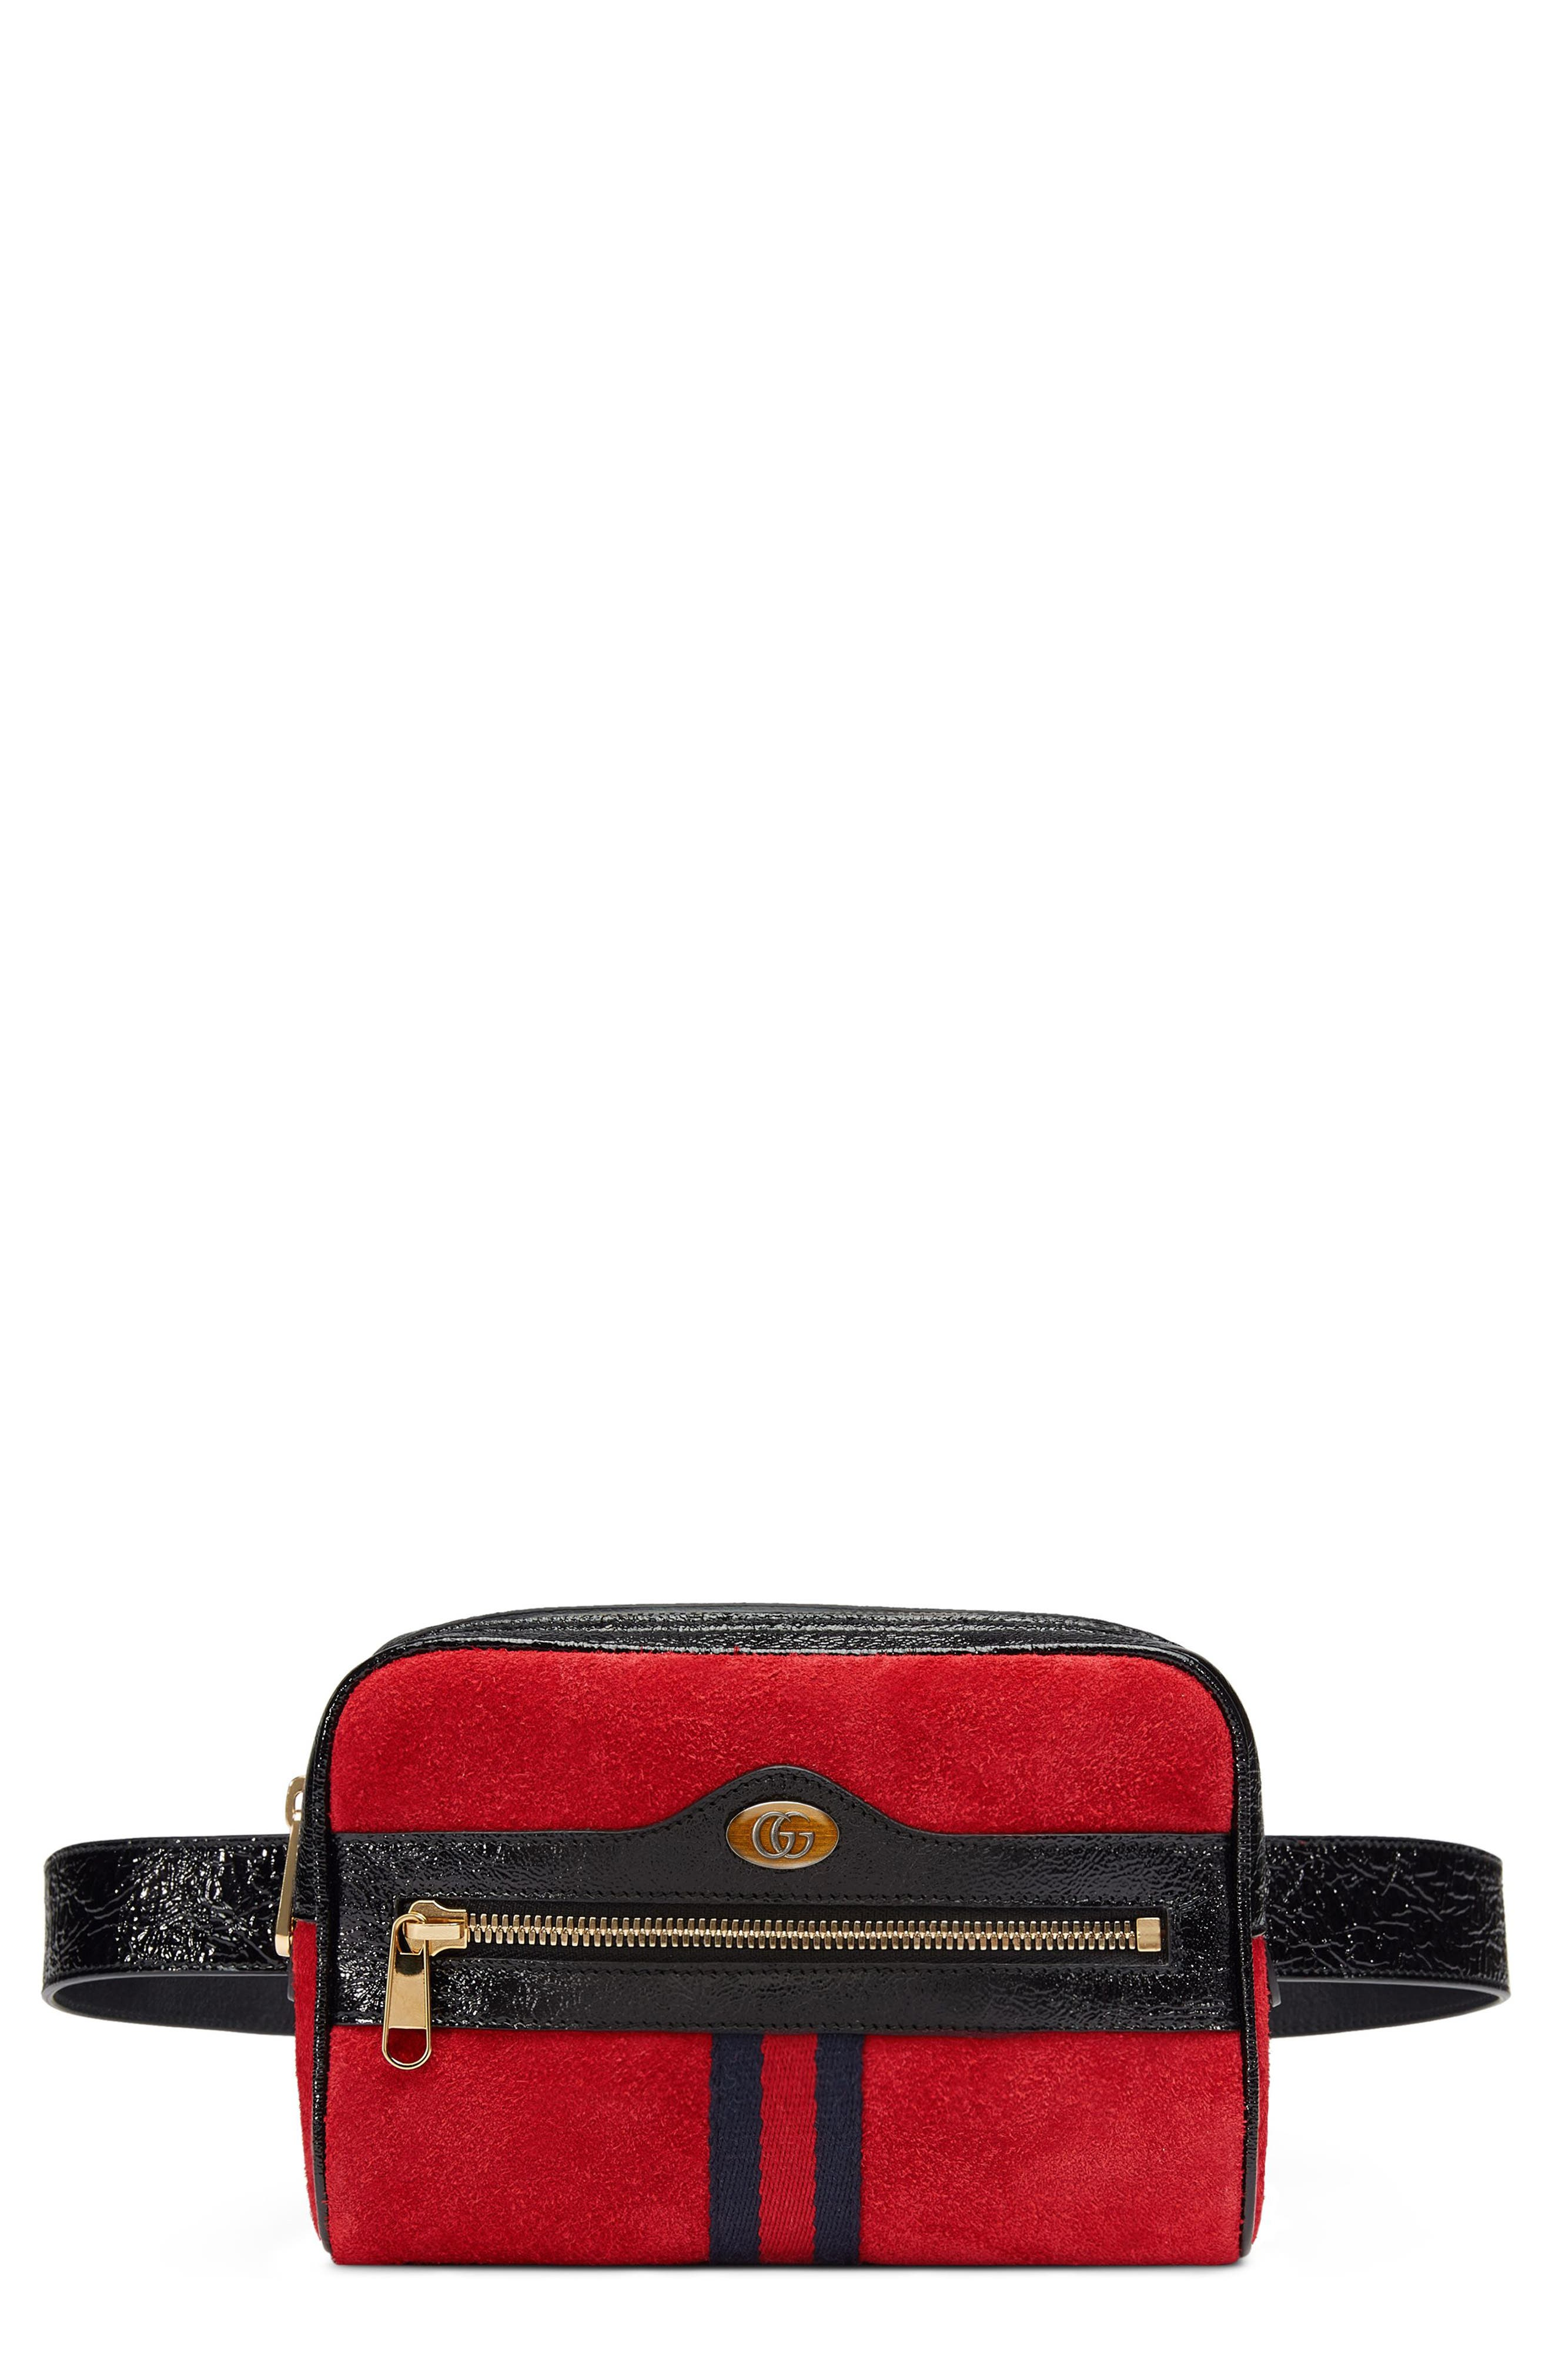 Ophidia Small Suede Belt Bag,                             Main thumbnail 1, color,                             Hibiscus Red/ Nero/ Blue